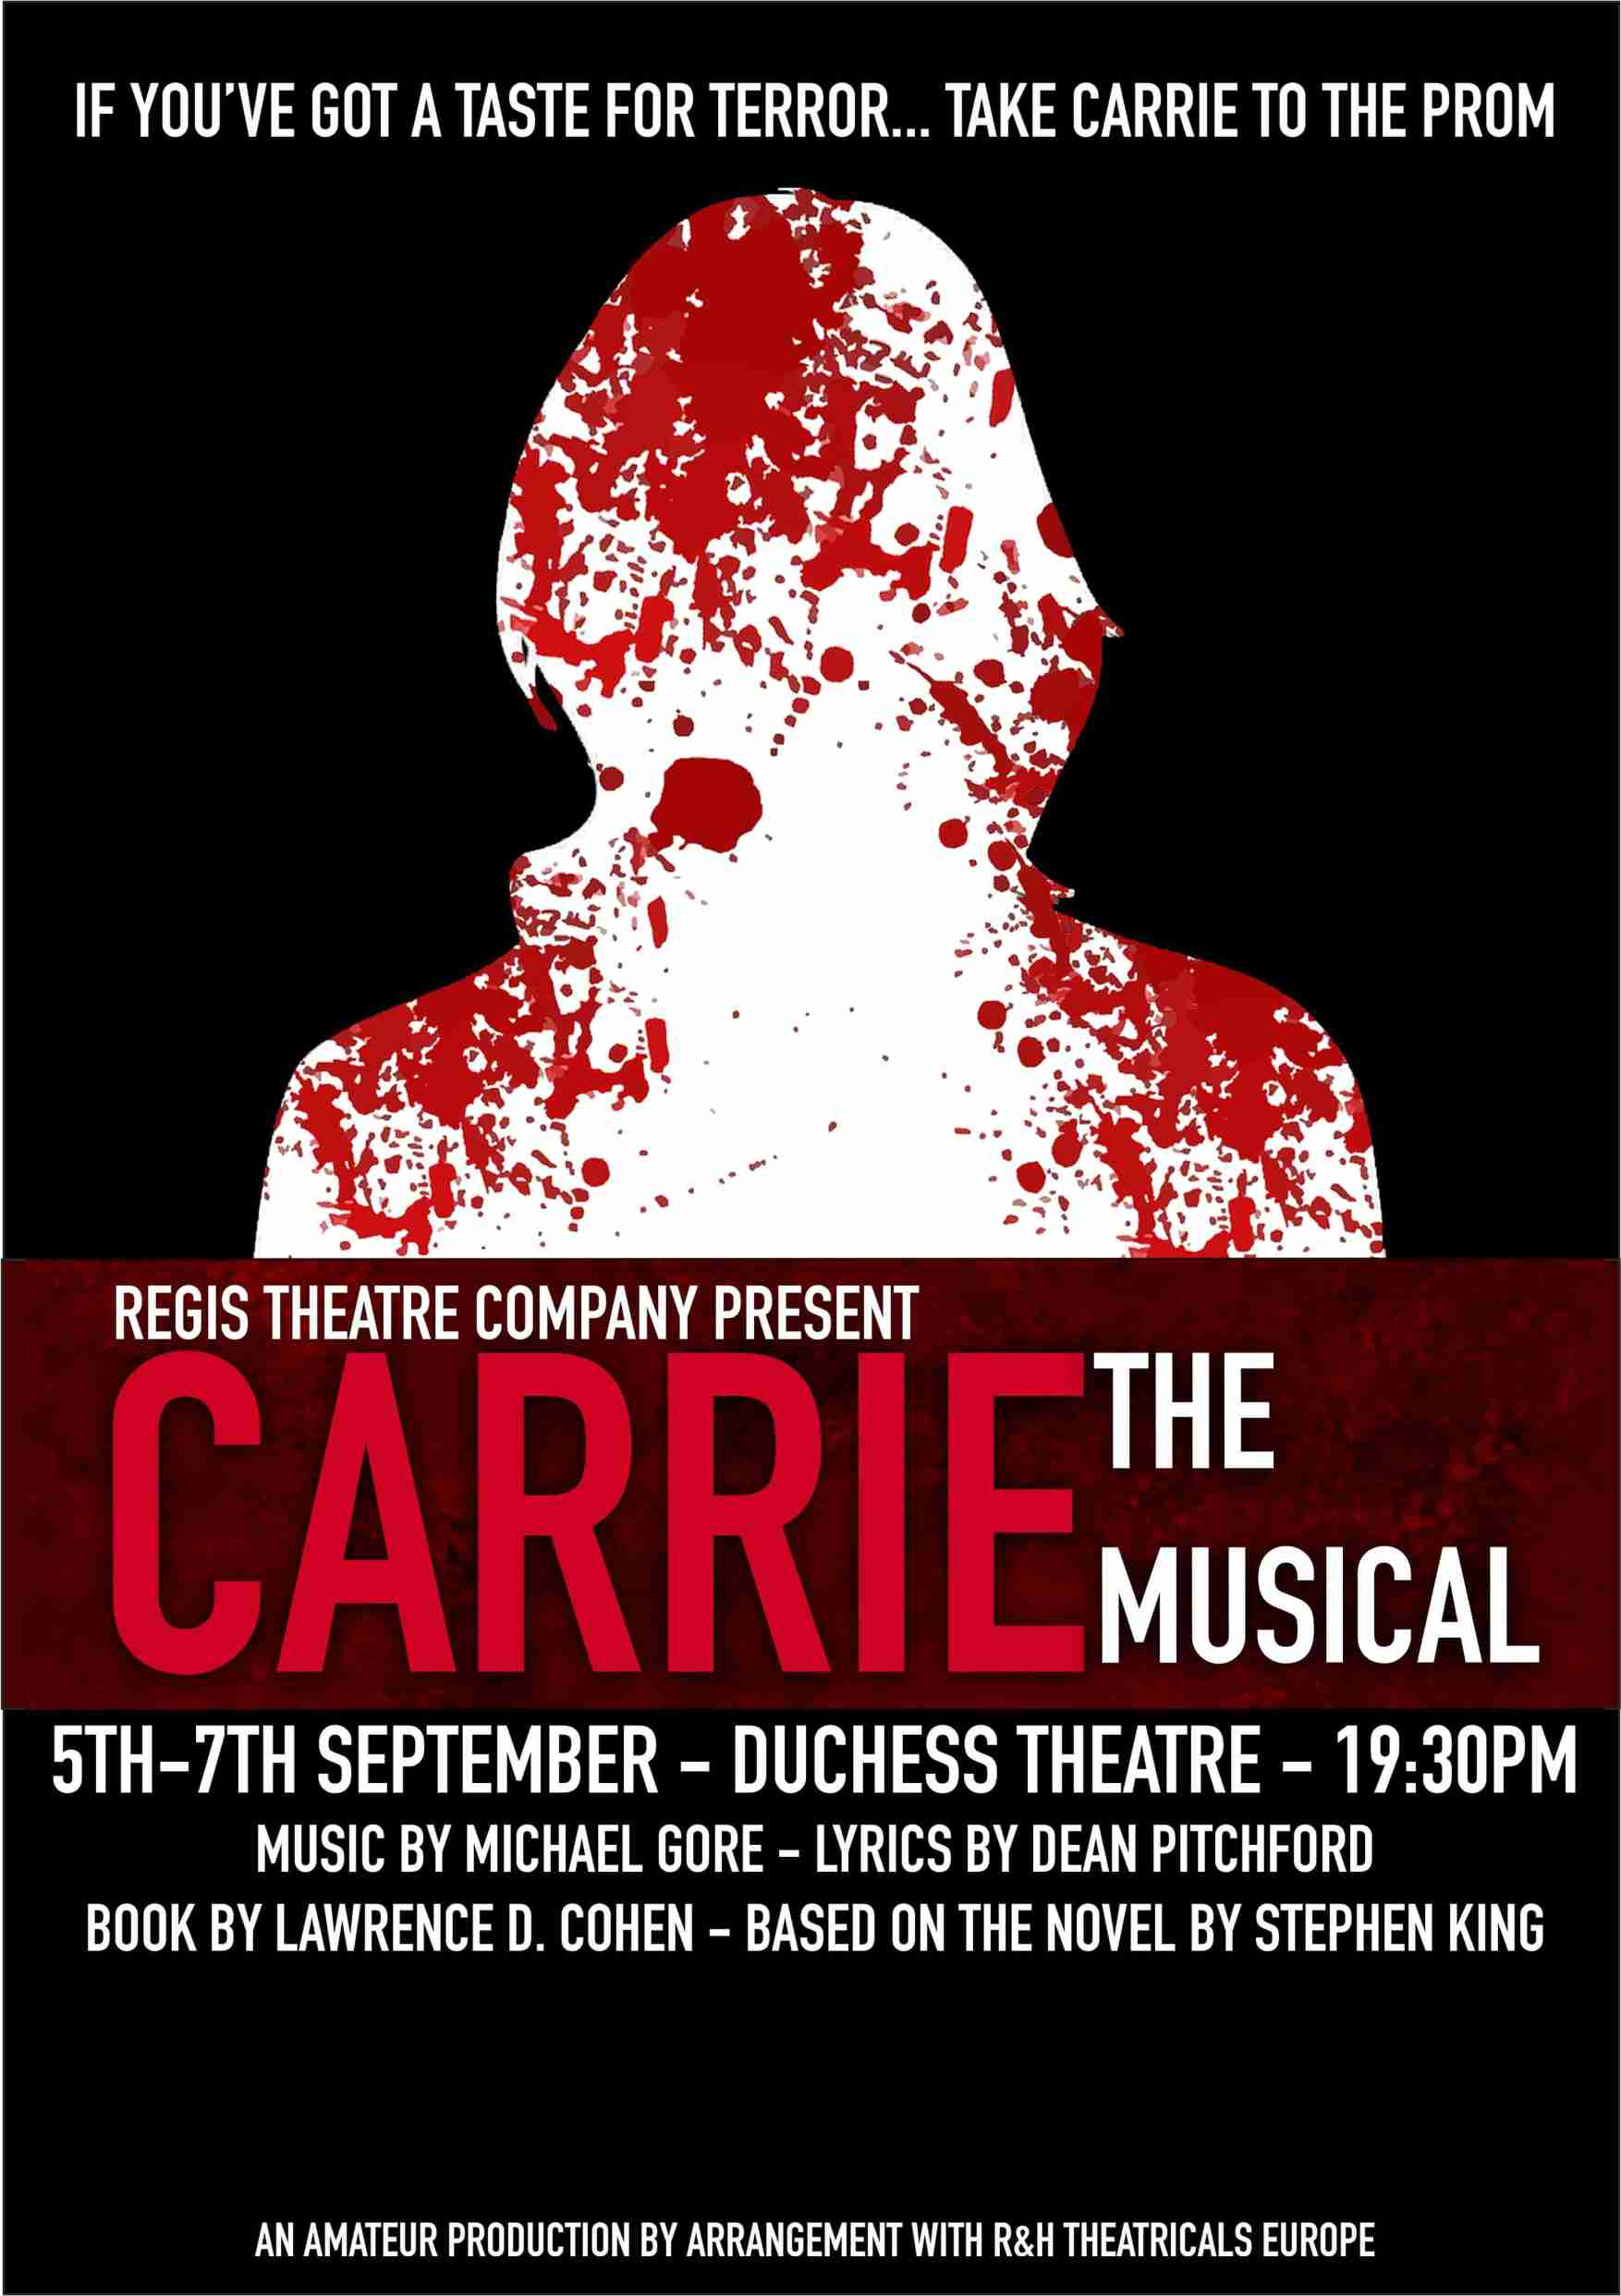 CARRIE The Musical - Regis Theatre Company banner image